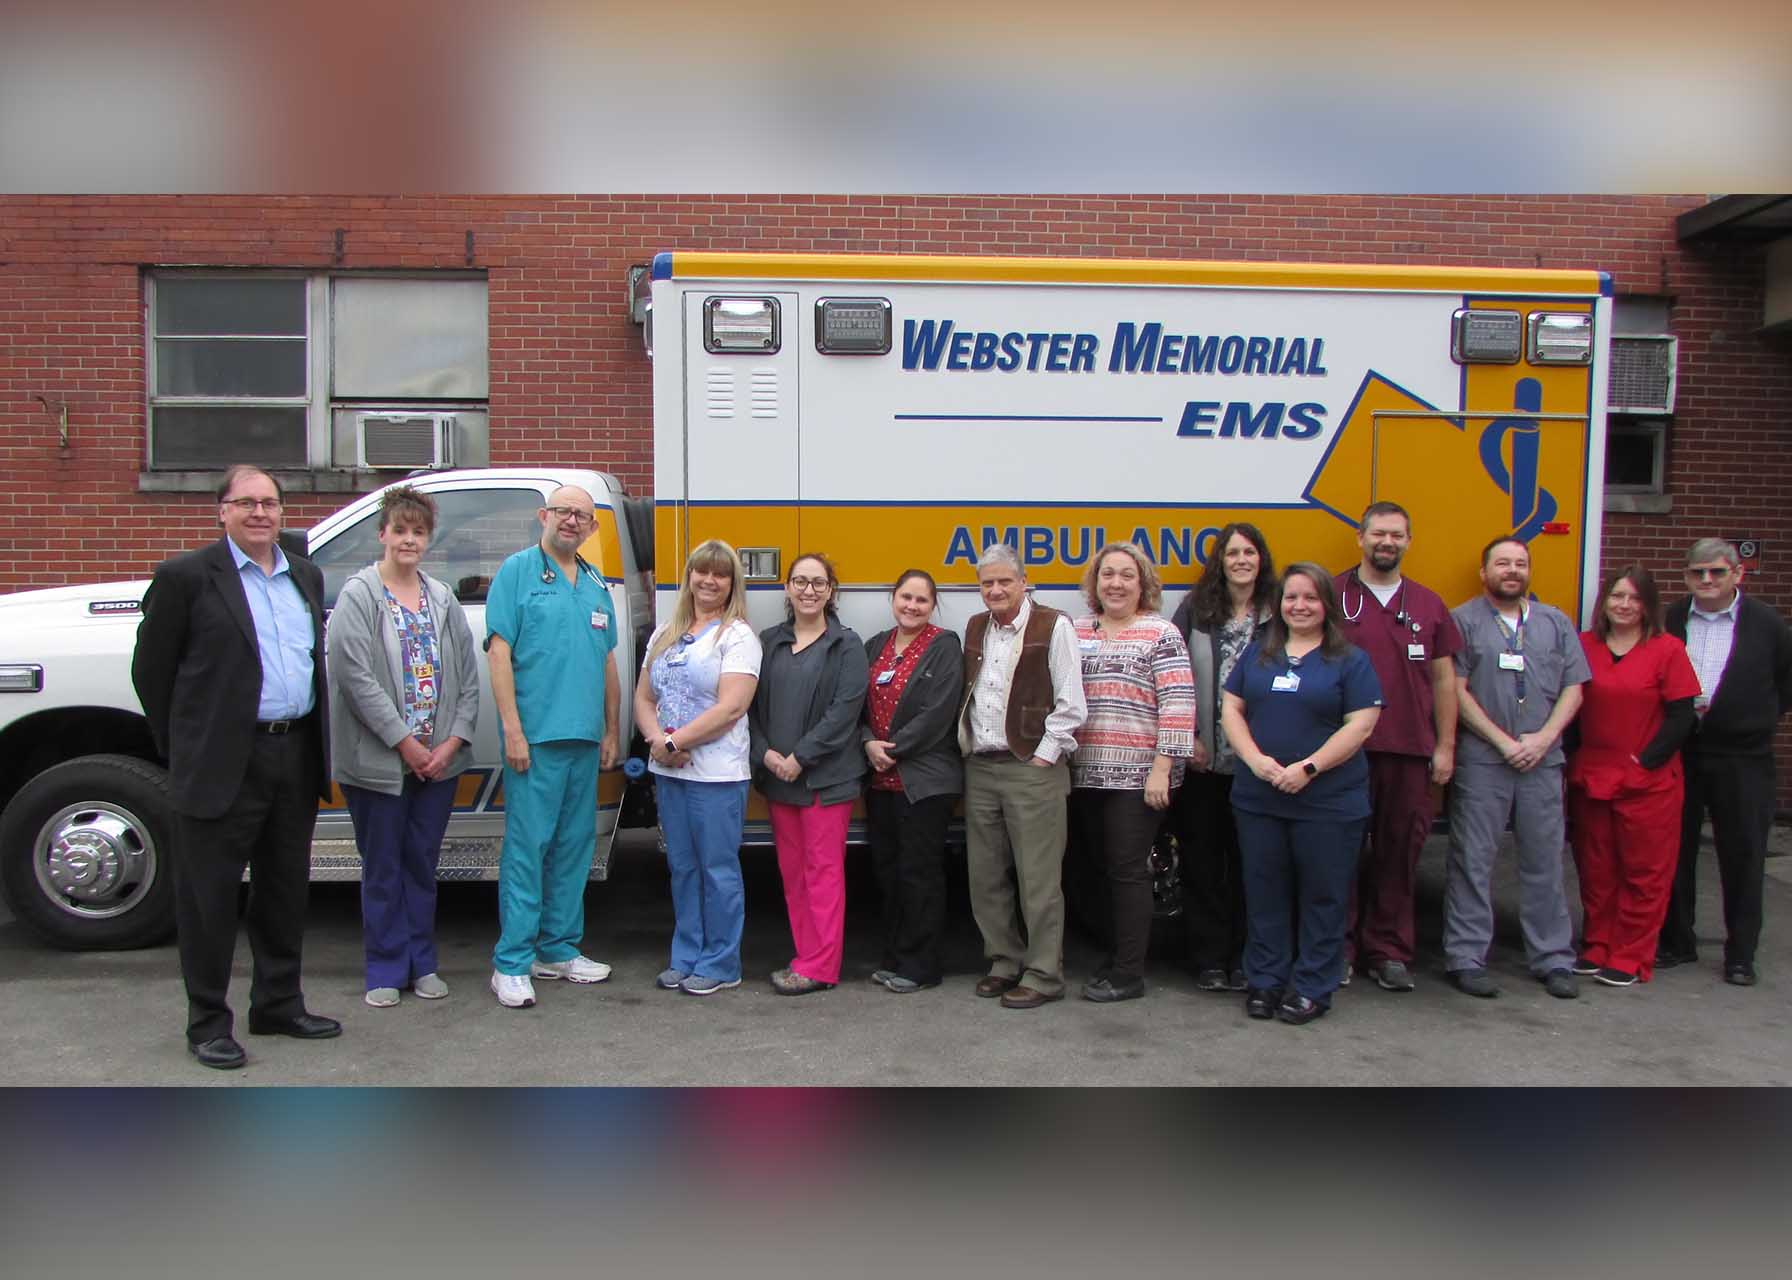 WCMH employees and medical staff happily pose with the hospital's new 2019 Dodge Ram EMS vehicle. The 4WD unit was recently added to the fleet and is well equipped to safely transport county residents, even in inclement weather conditions. Through the effort of a community fundraising campaign, the hospital hopes to add a second replacement EMS vehicle later in 2020.